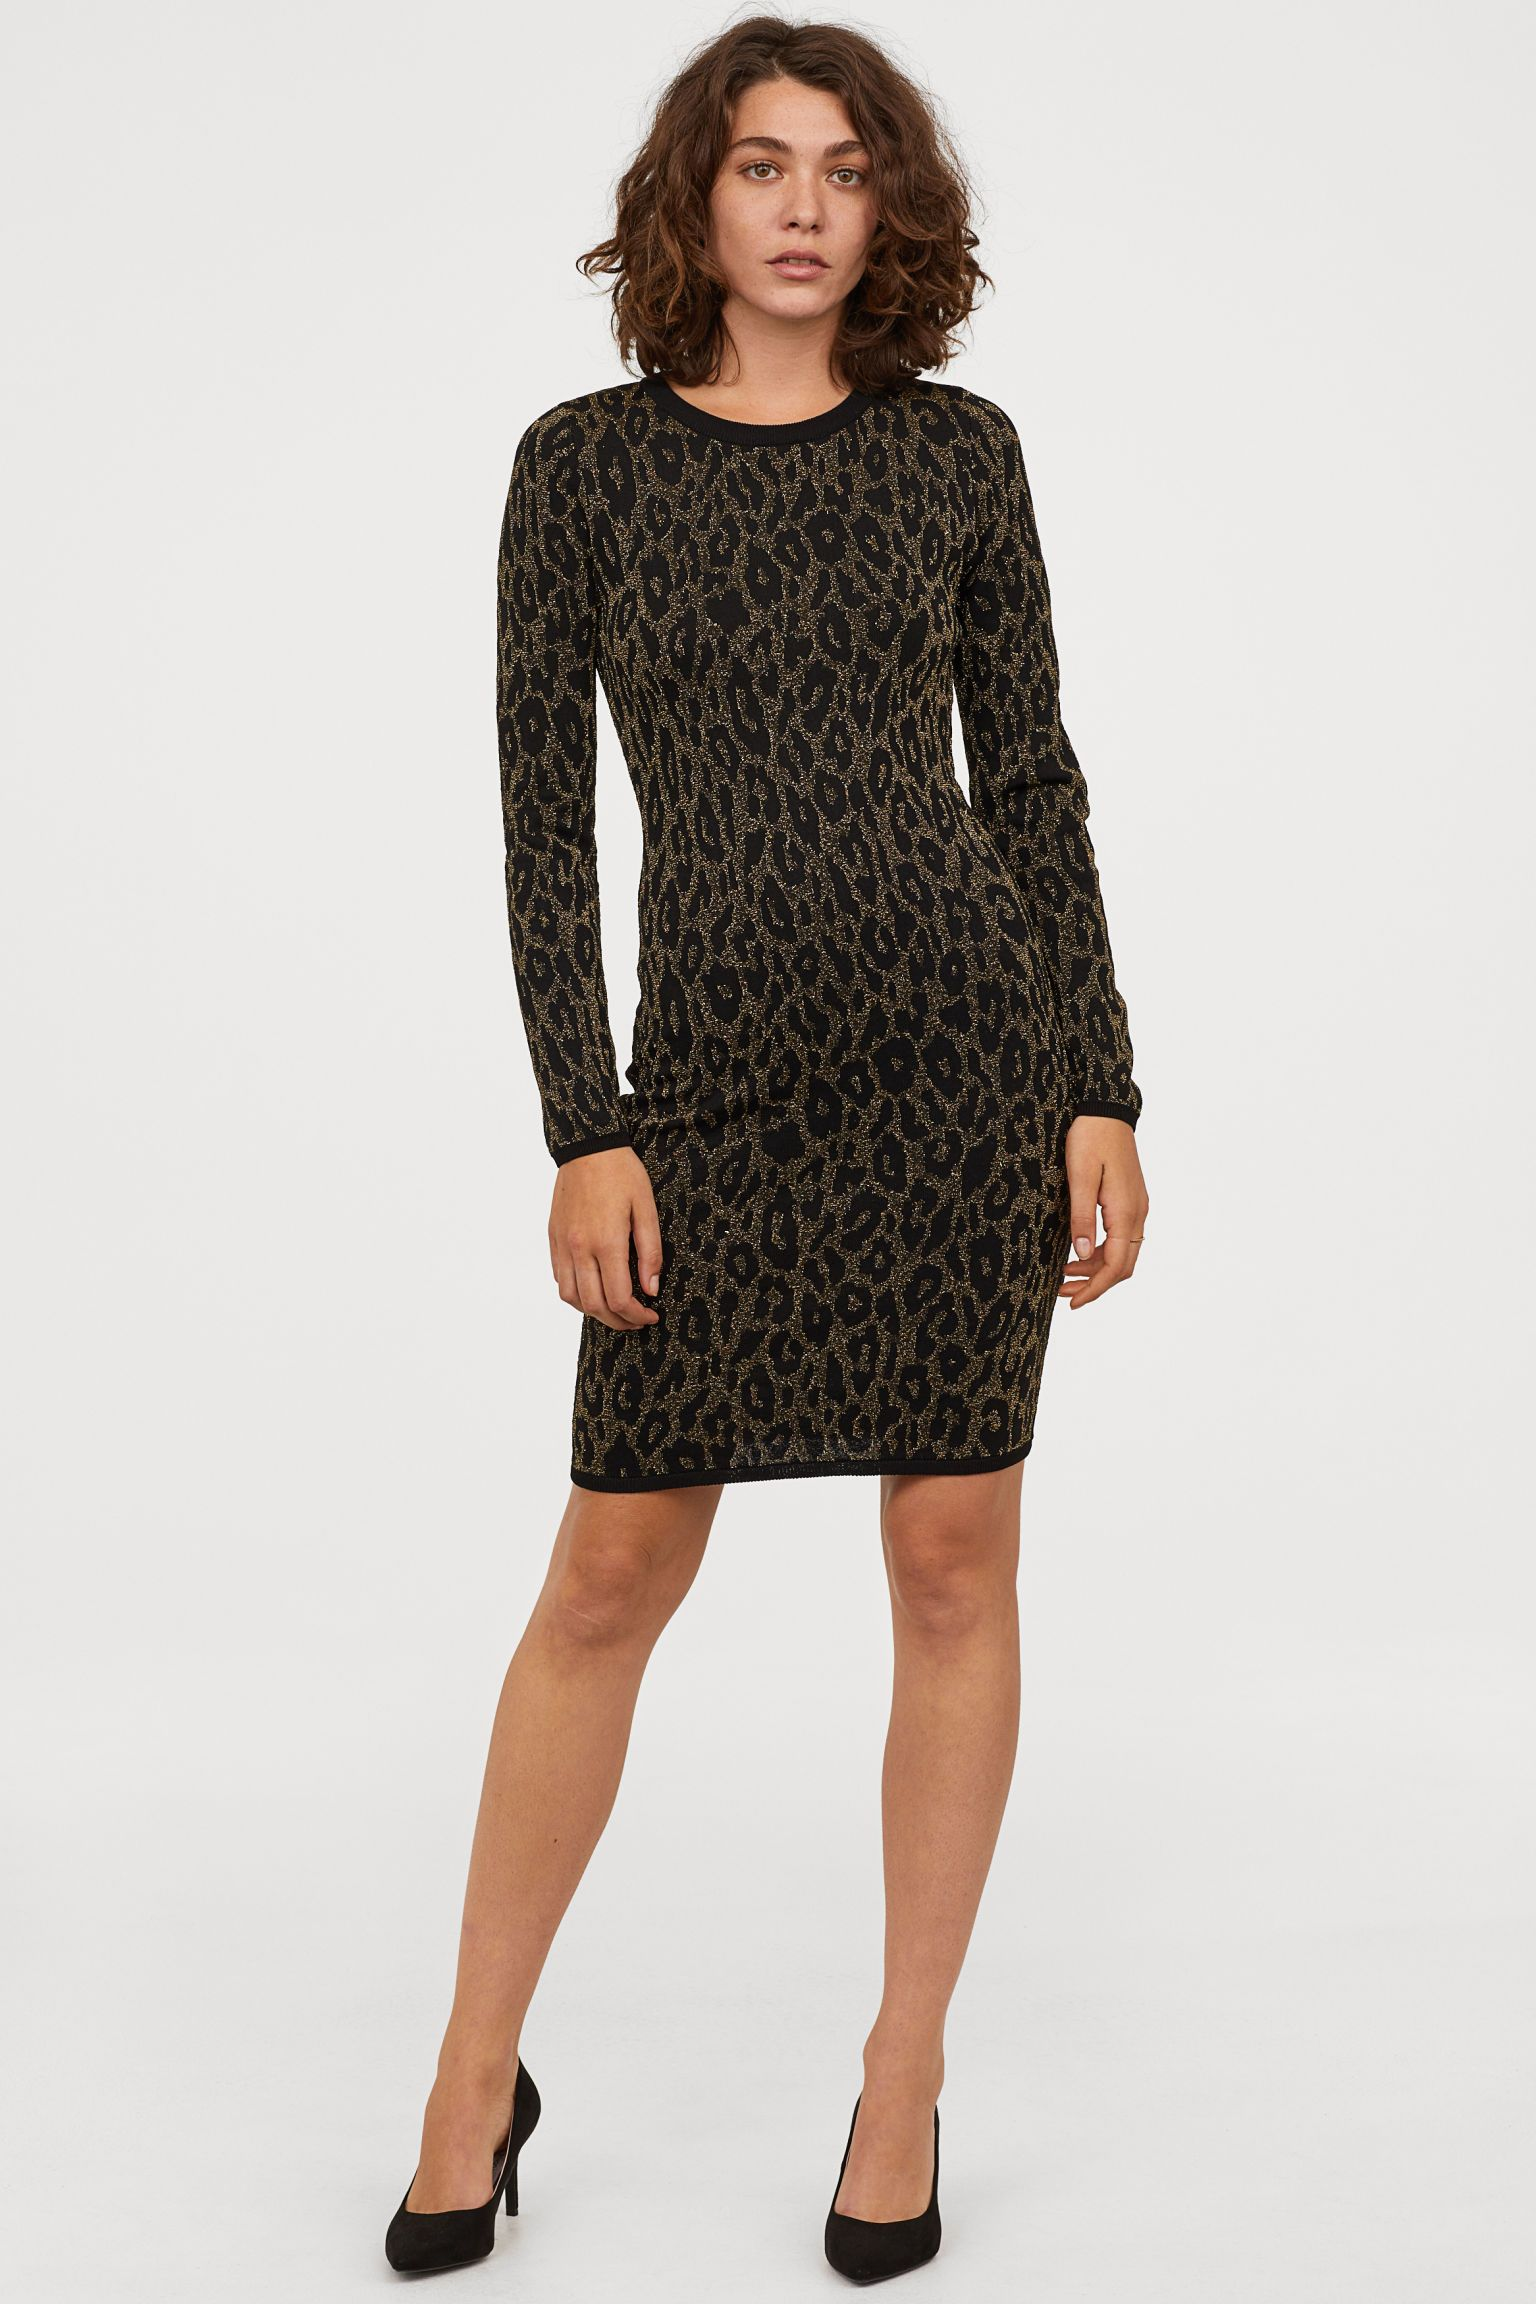 bed910fcee2b6 H&M Jacquard-knit Dress - Black in 2019 | H&Me | Knit dress, Dresses ...